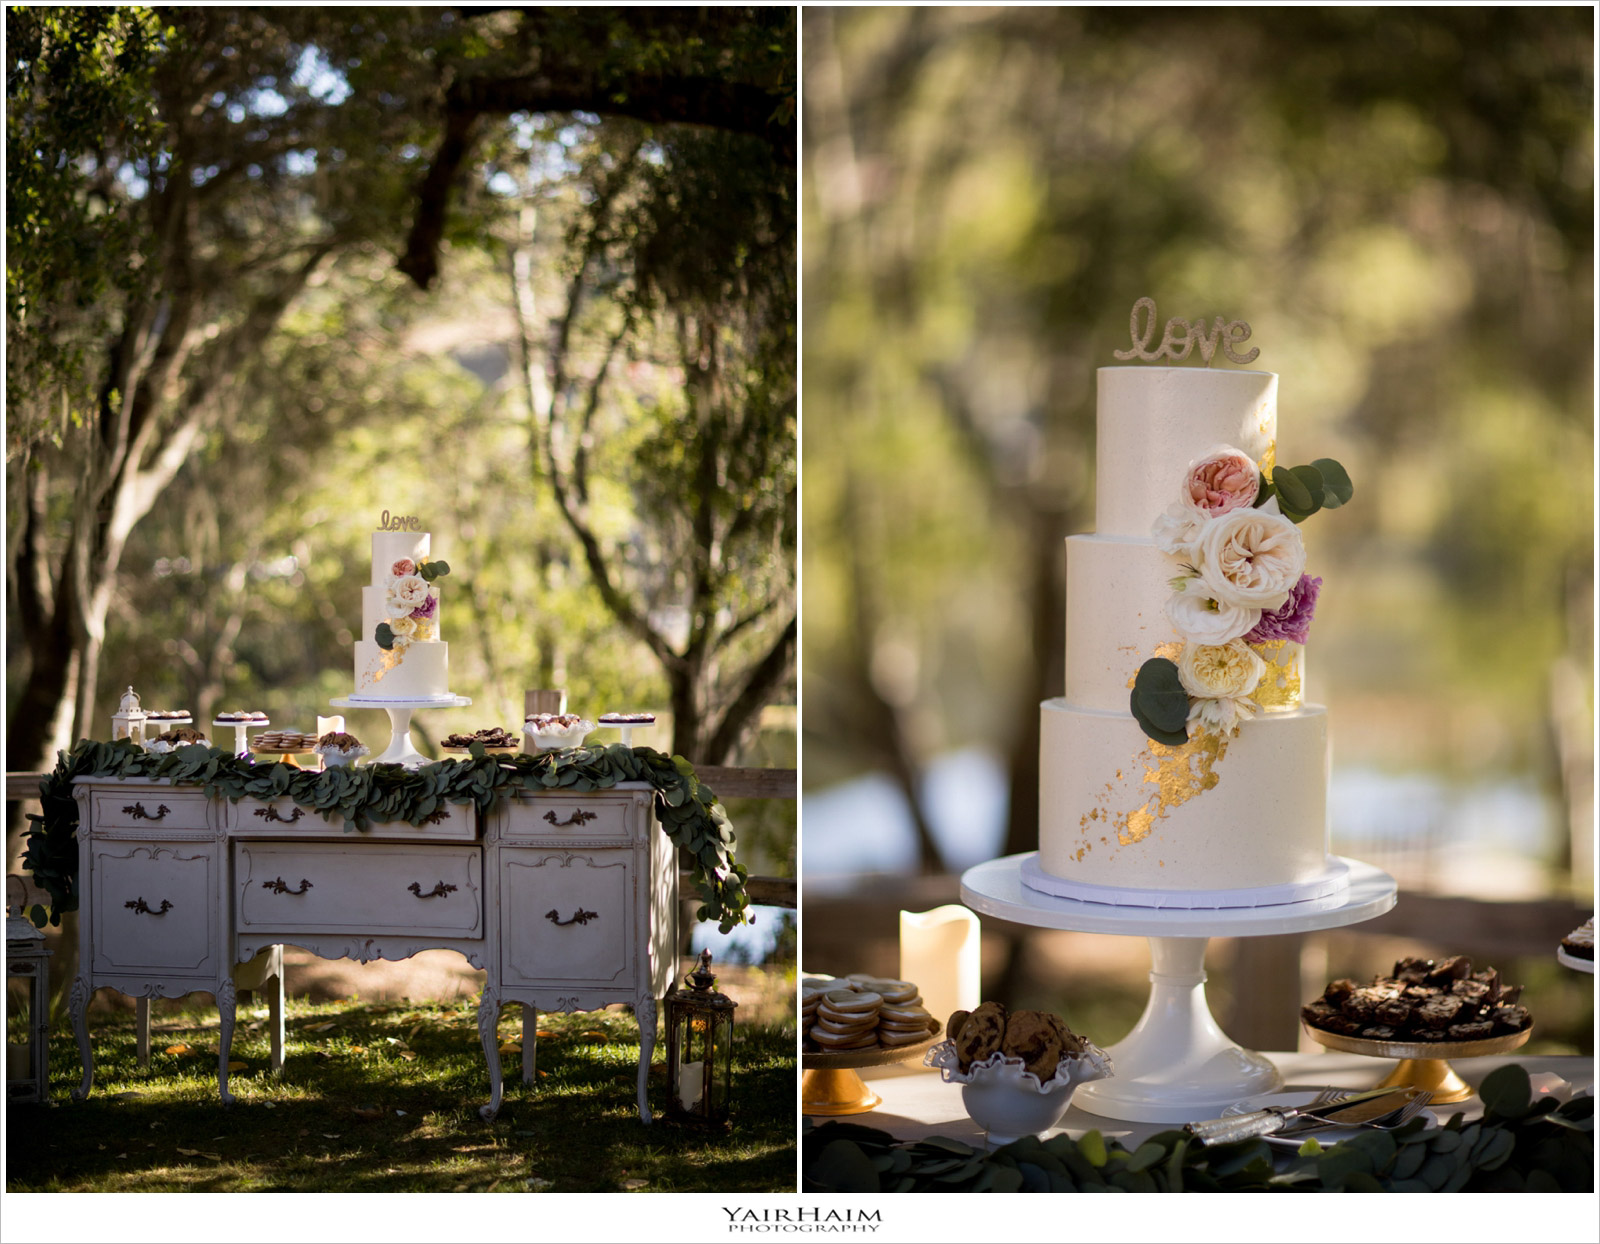 Destination-wedding-photographer-Yair-Haim-39